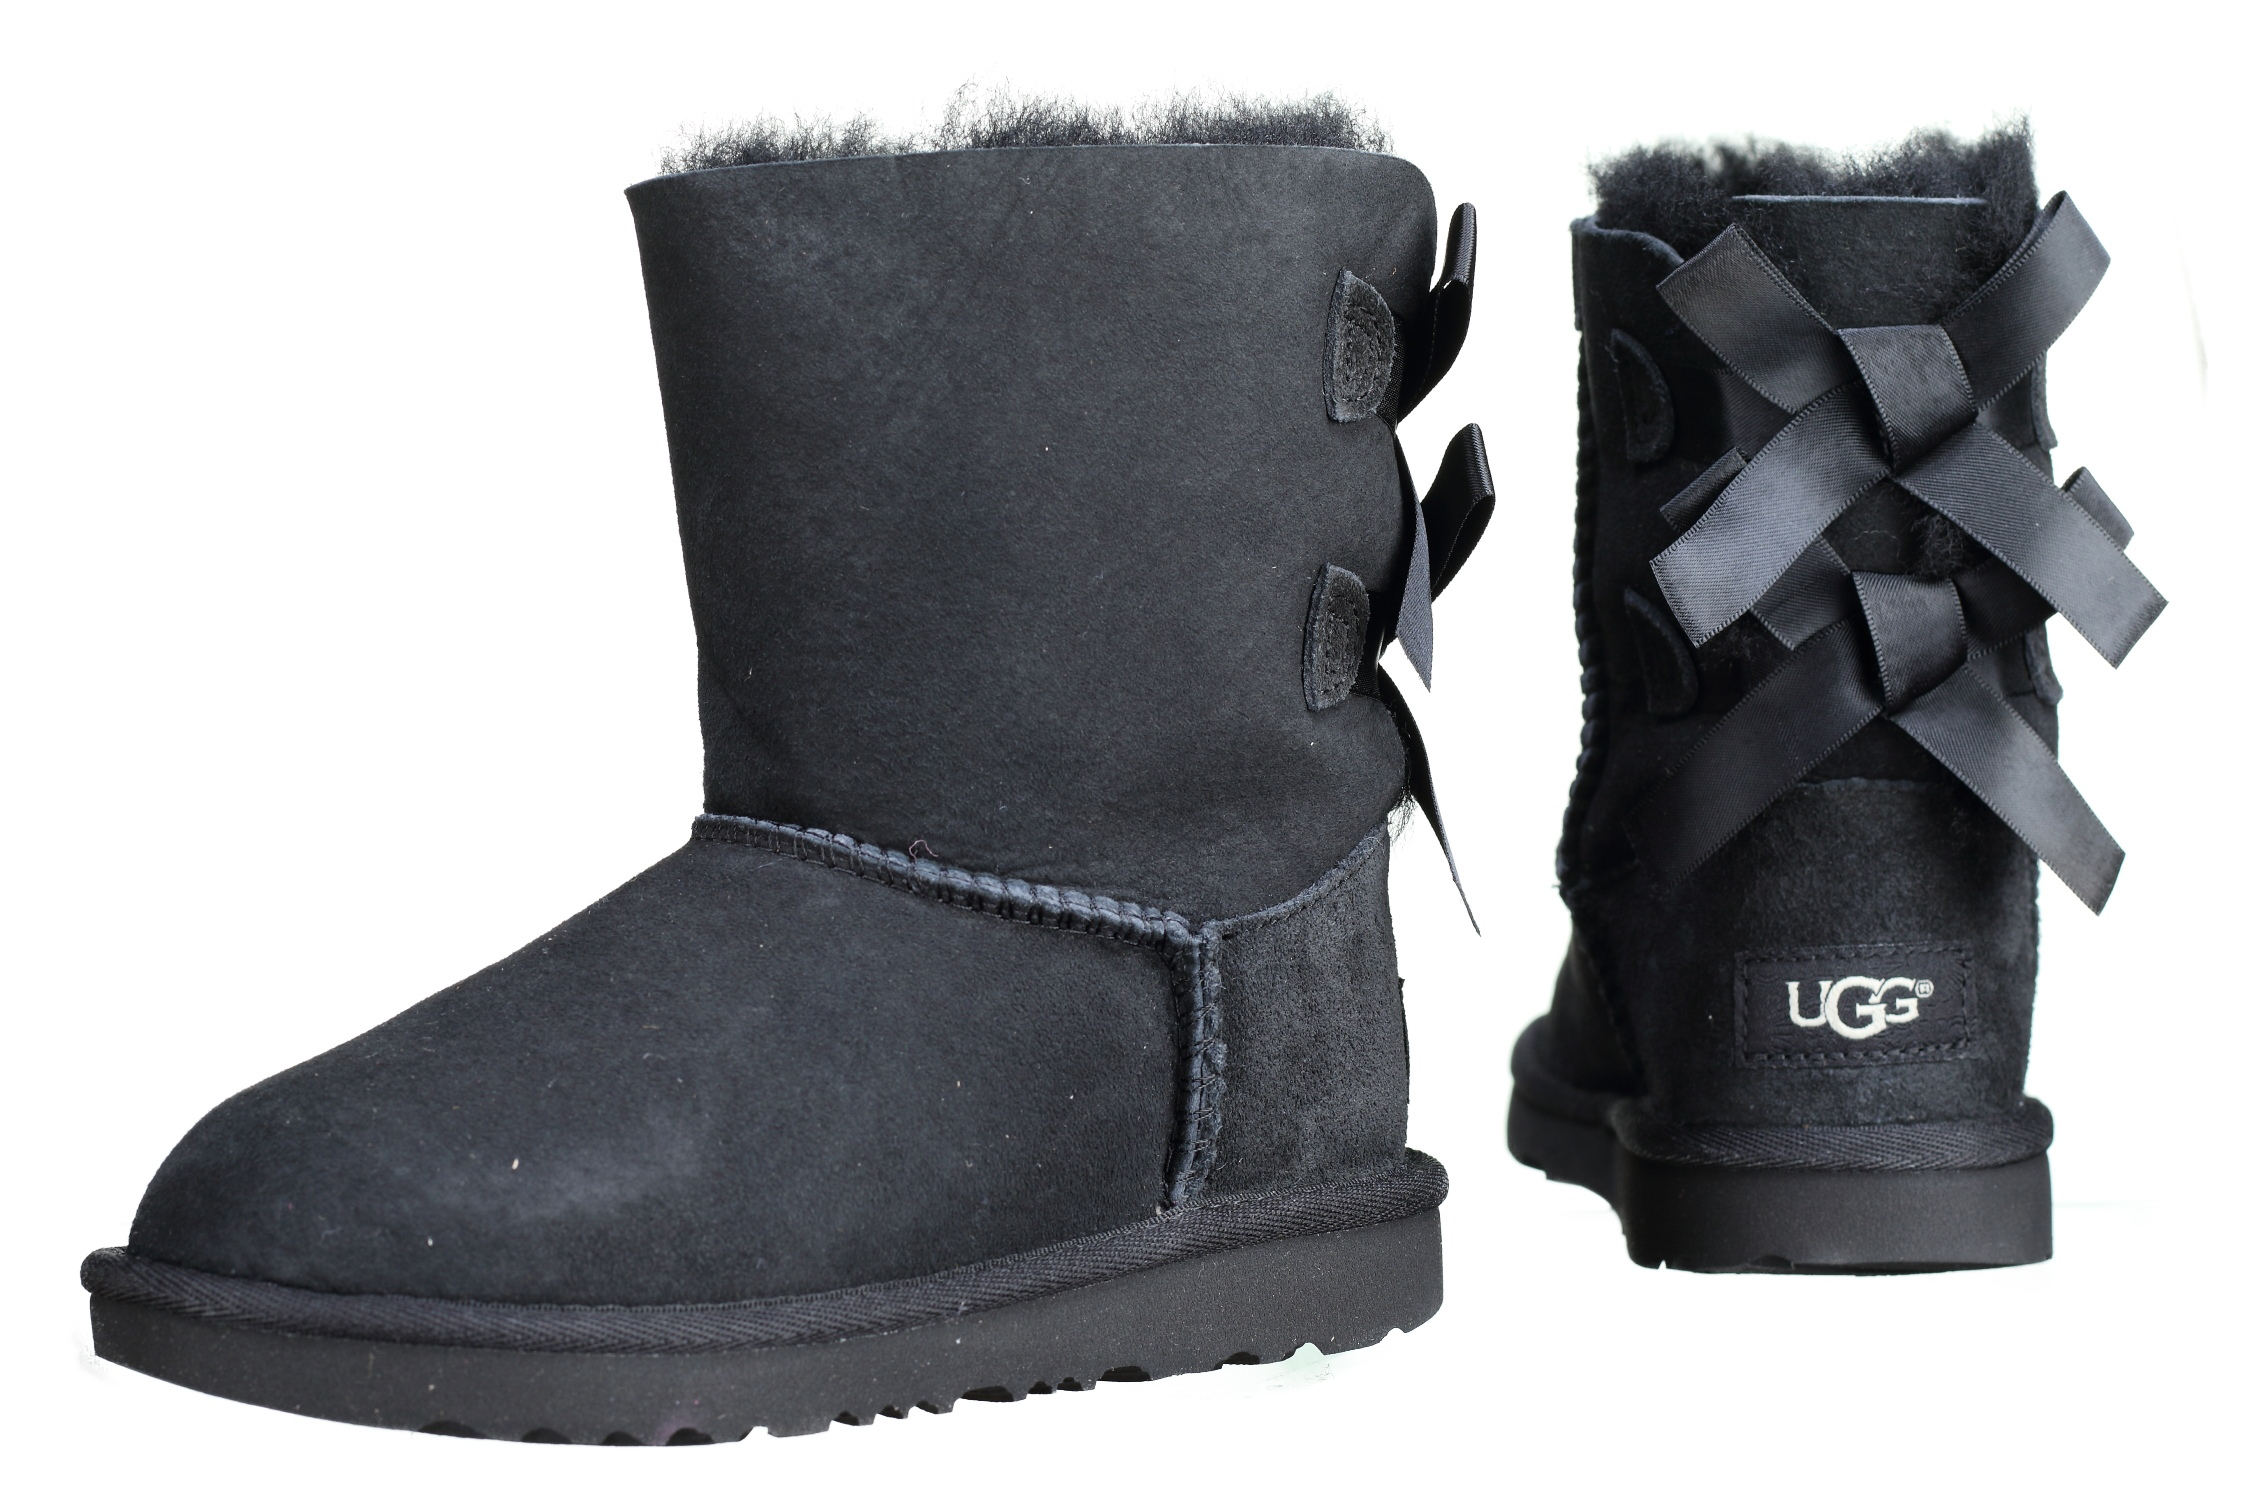 http://www.leadermode.com/133133/ugg-t-bailey-bow-2-1017394t-t-black.jpg